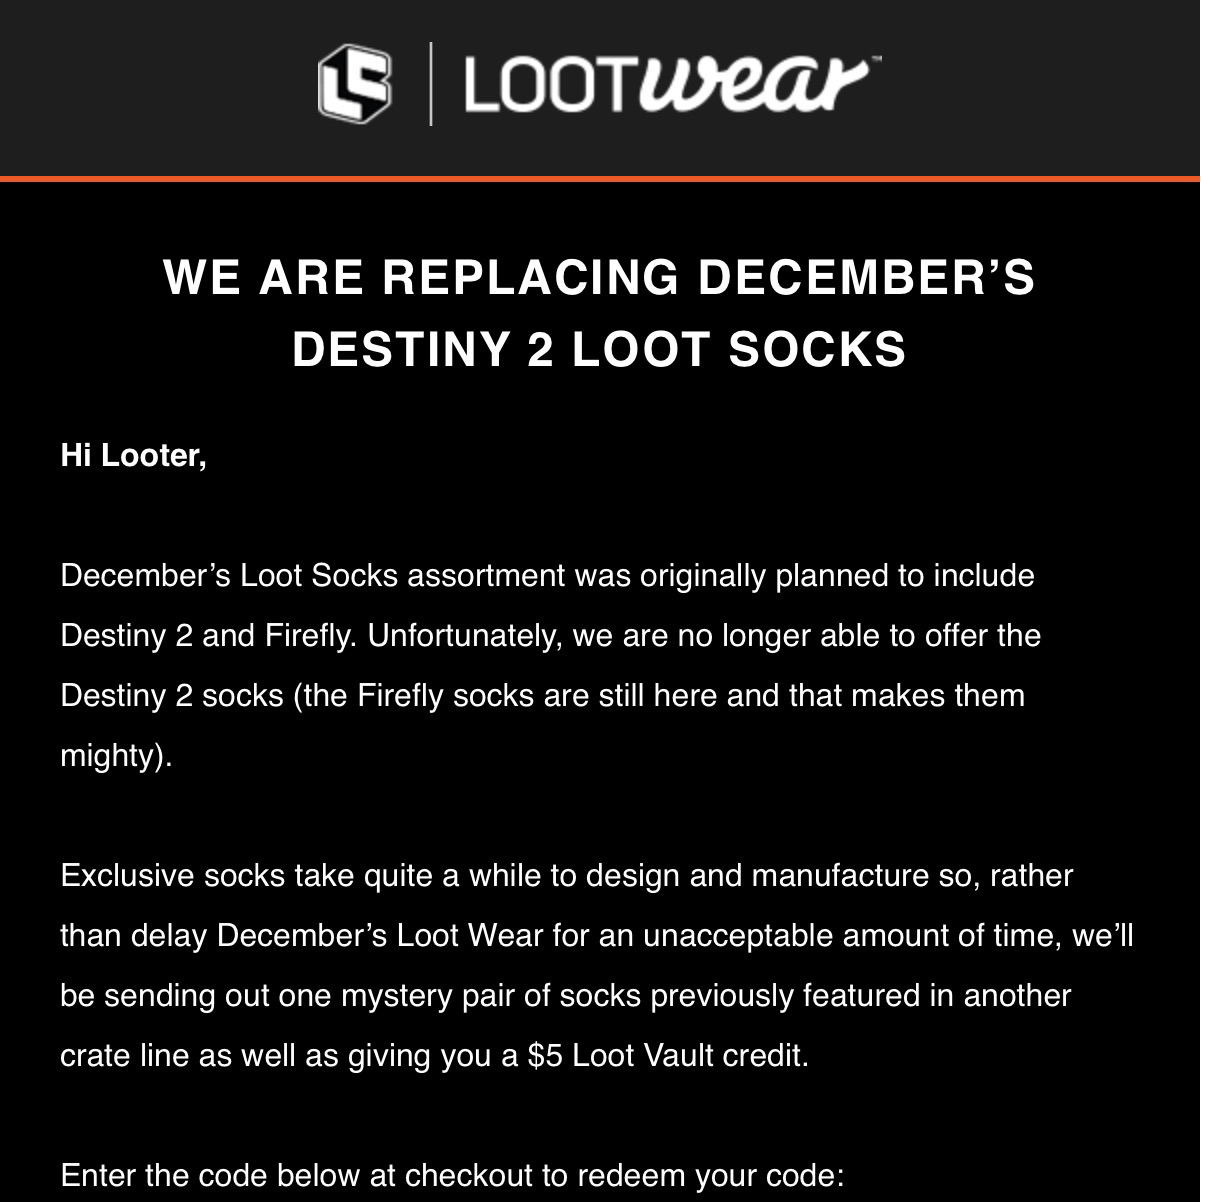 Loot Wear December 2017 Loot Socks Refund Info – Franchise Change